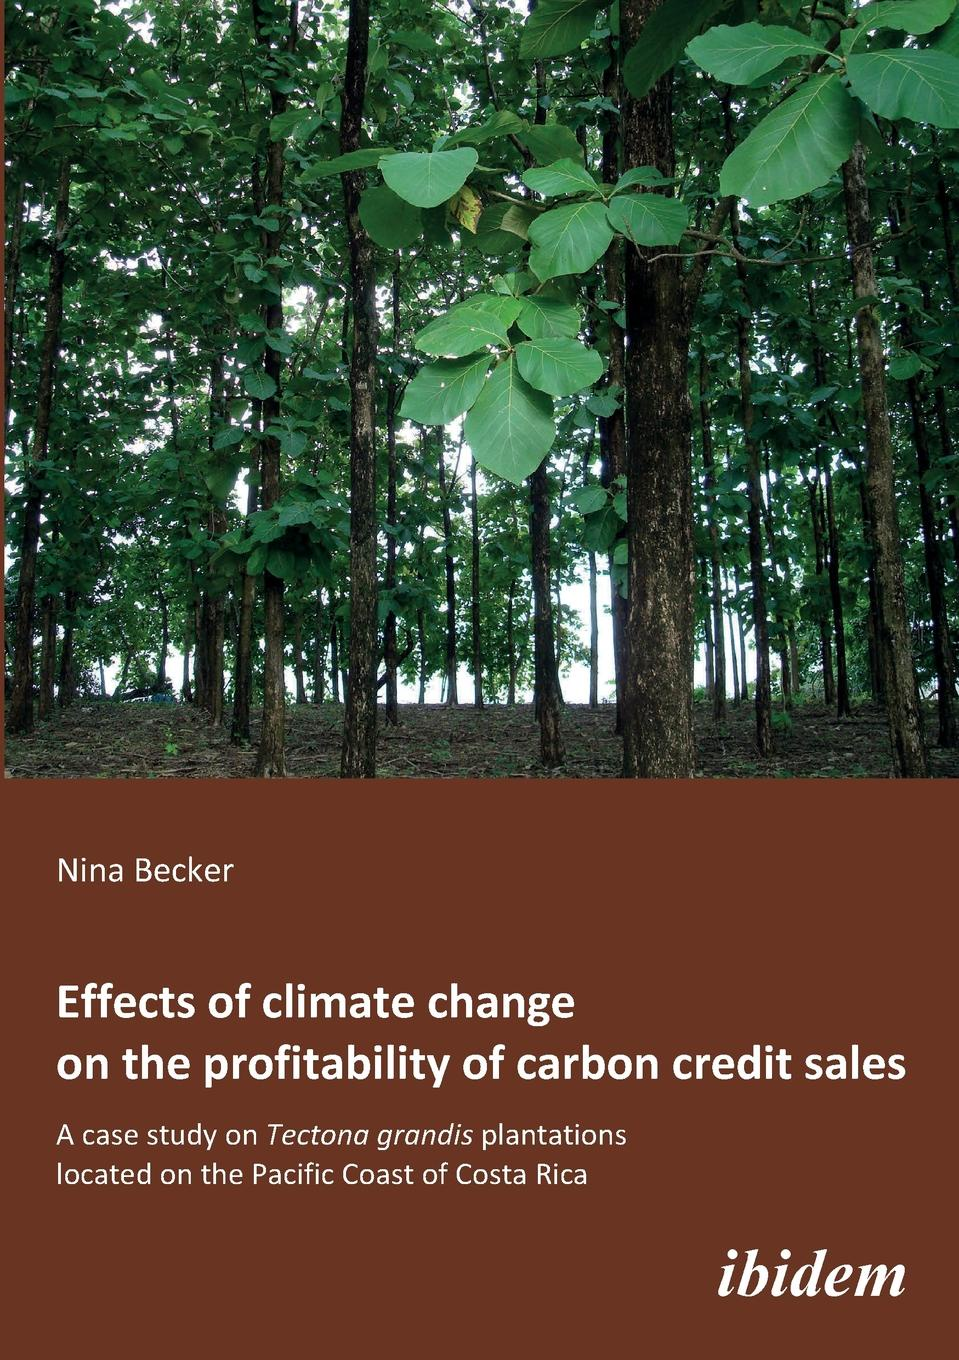 купить Nina Becker Effects of climate change on the profitability of carbon credit sales. A case study on Tectona grandis plantations located on the Pacific Coast of Costa Rica по цене 4202 рублей